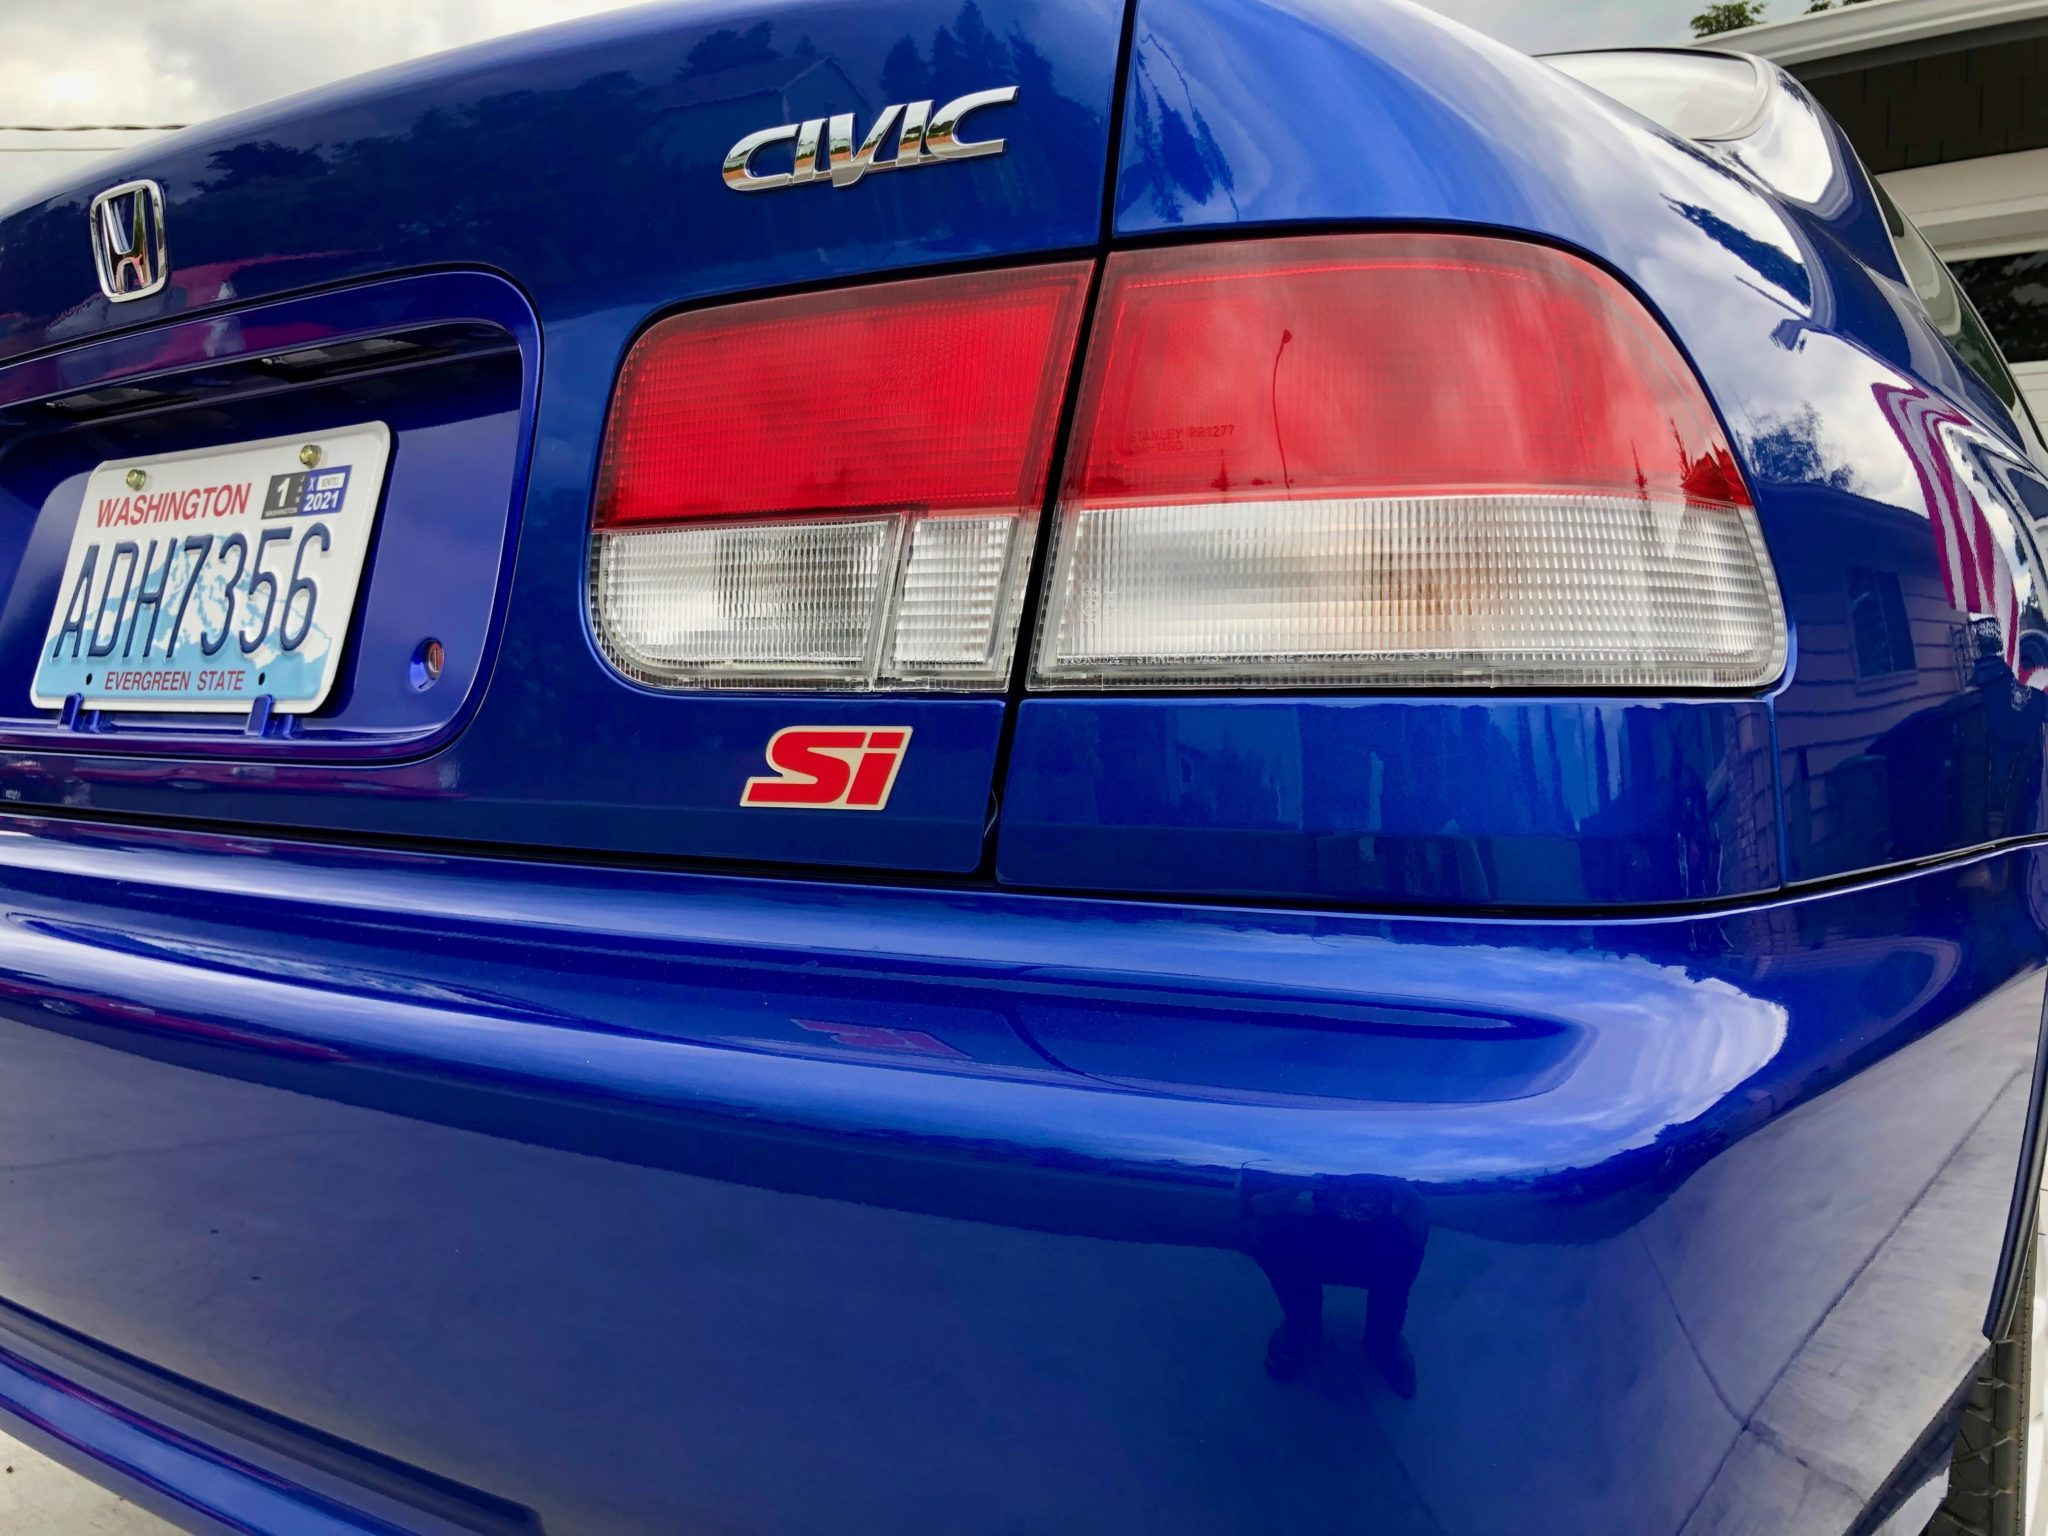 2000 Honda Civic Si Rear Three-Quarter Badging